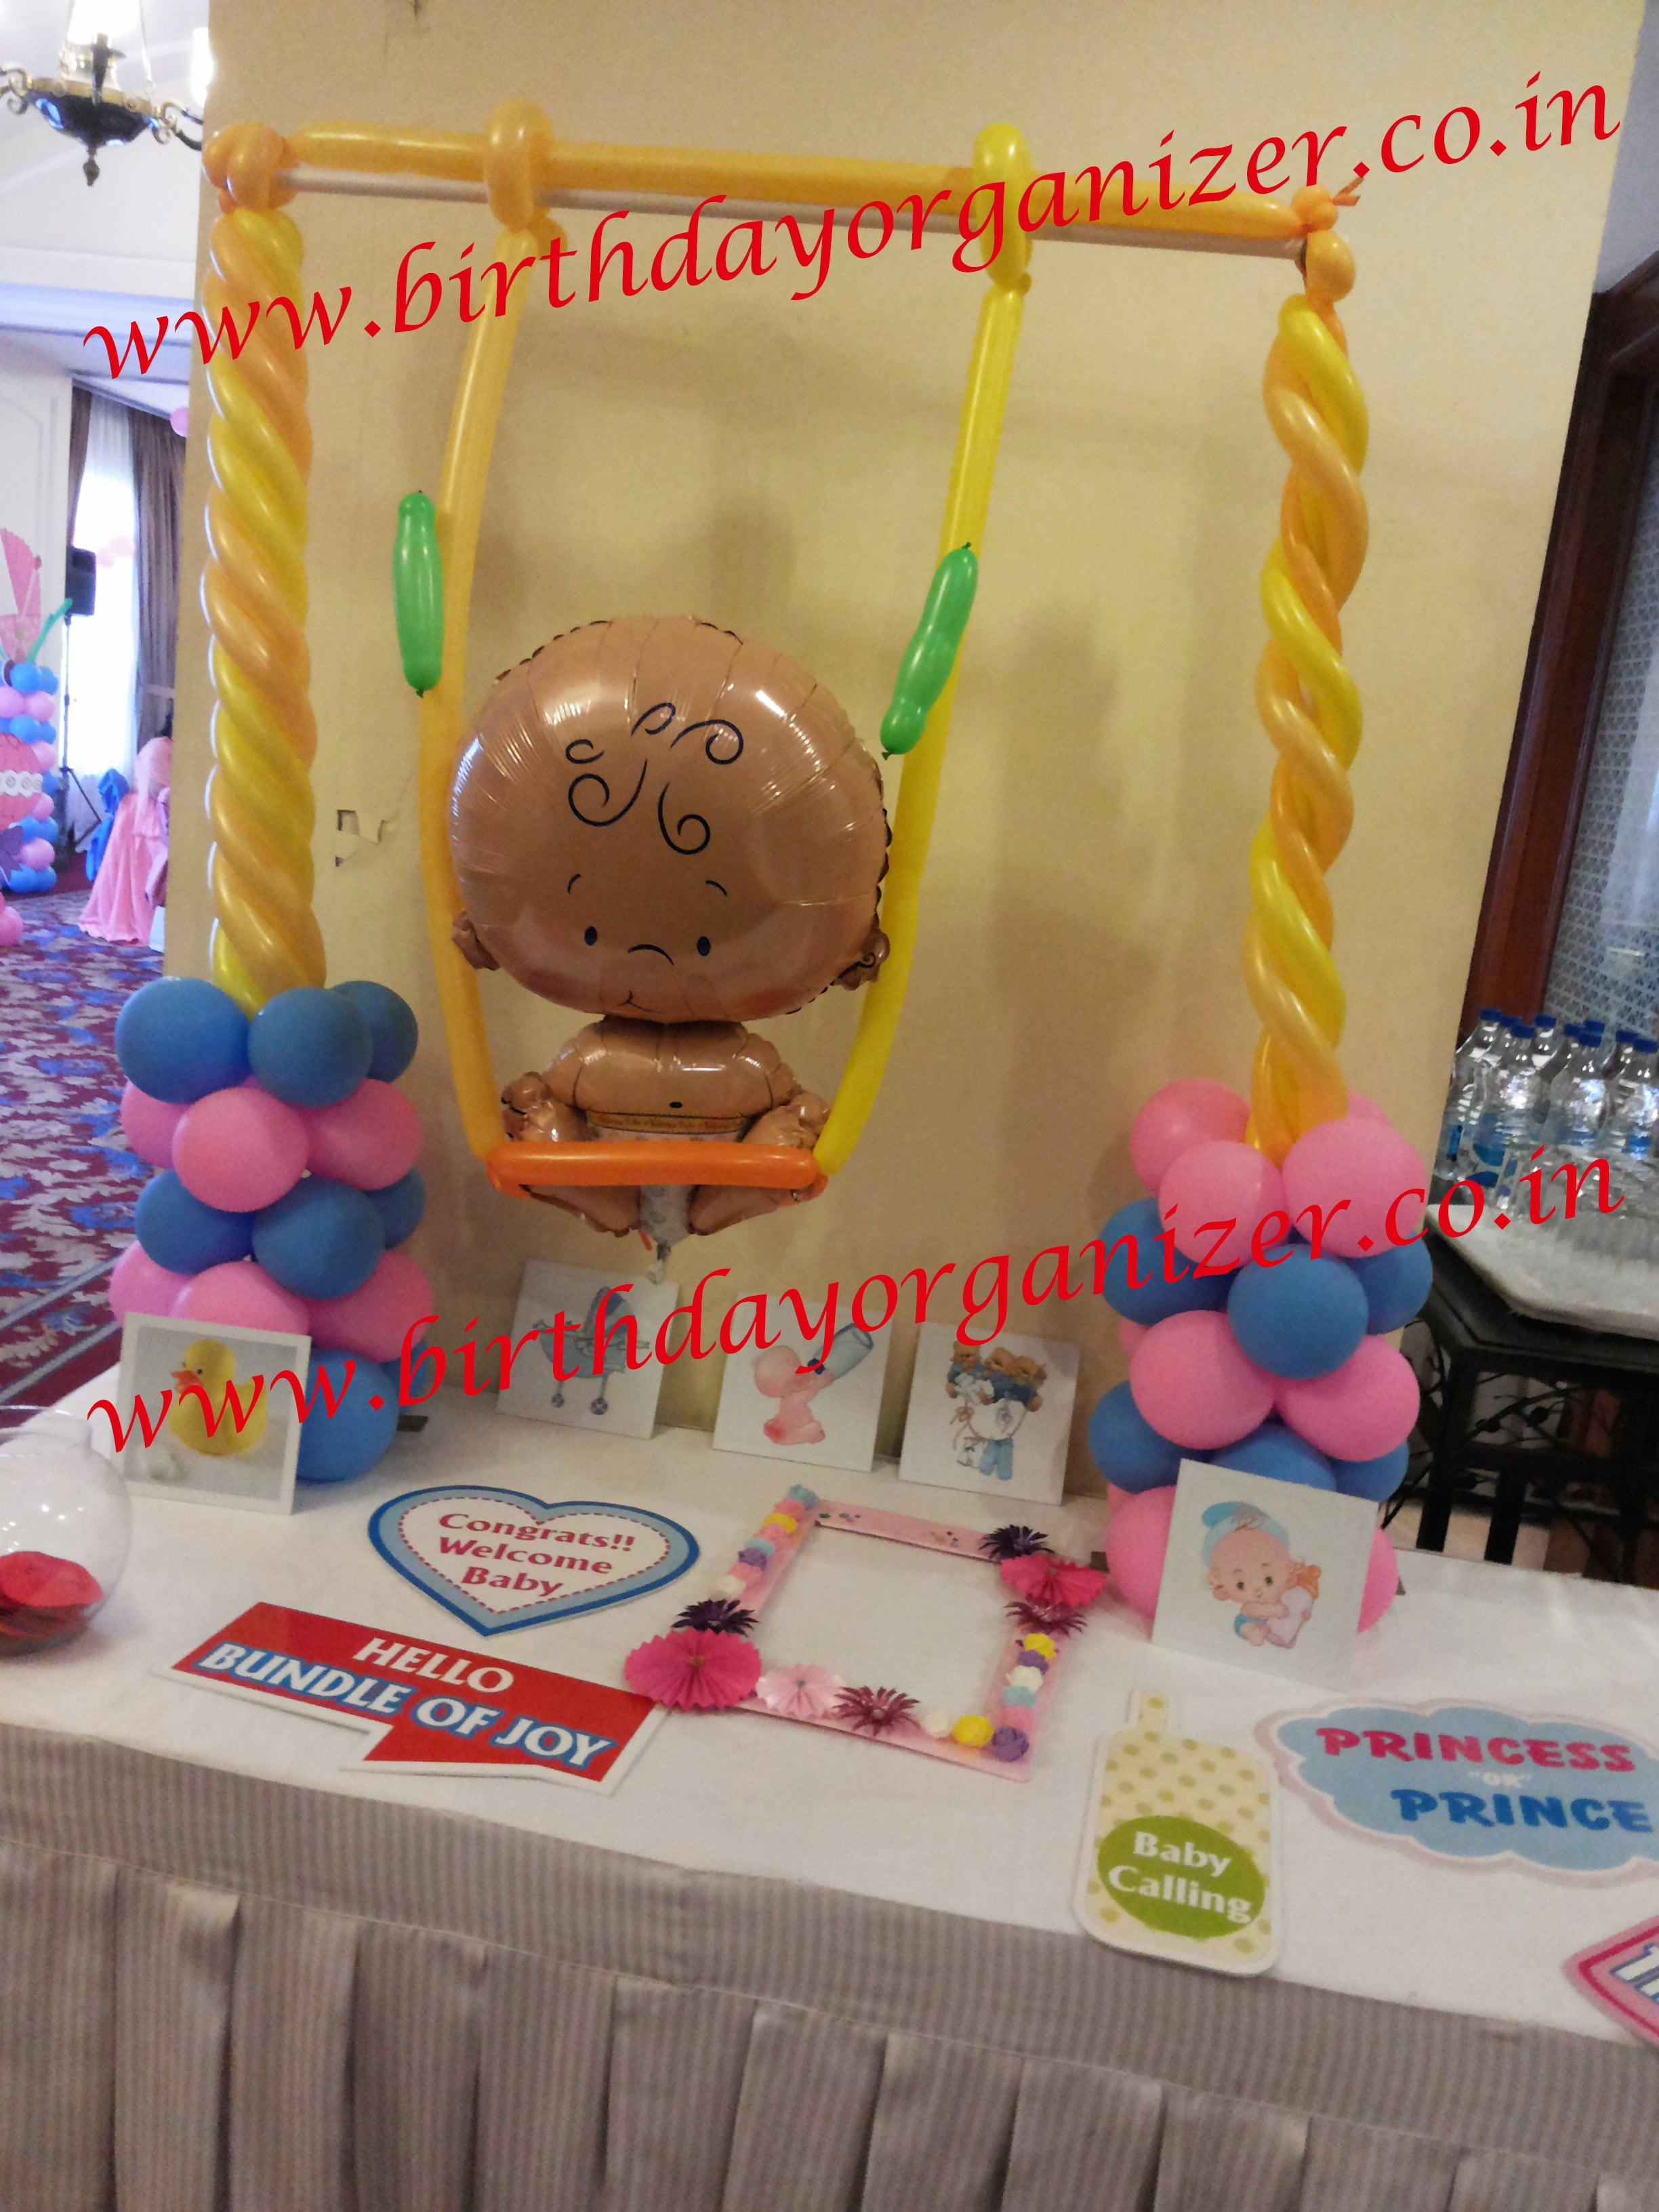 Baby shower cake table decoration in noida, Baby shower cake table decoration in delhi ncr, Baby shower cake table decoration in gurgaon